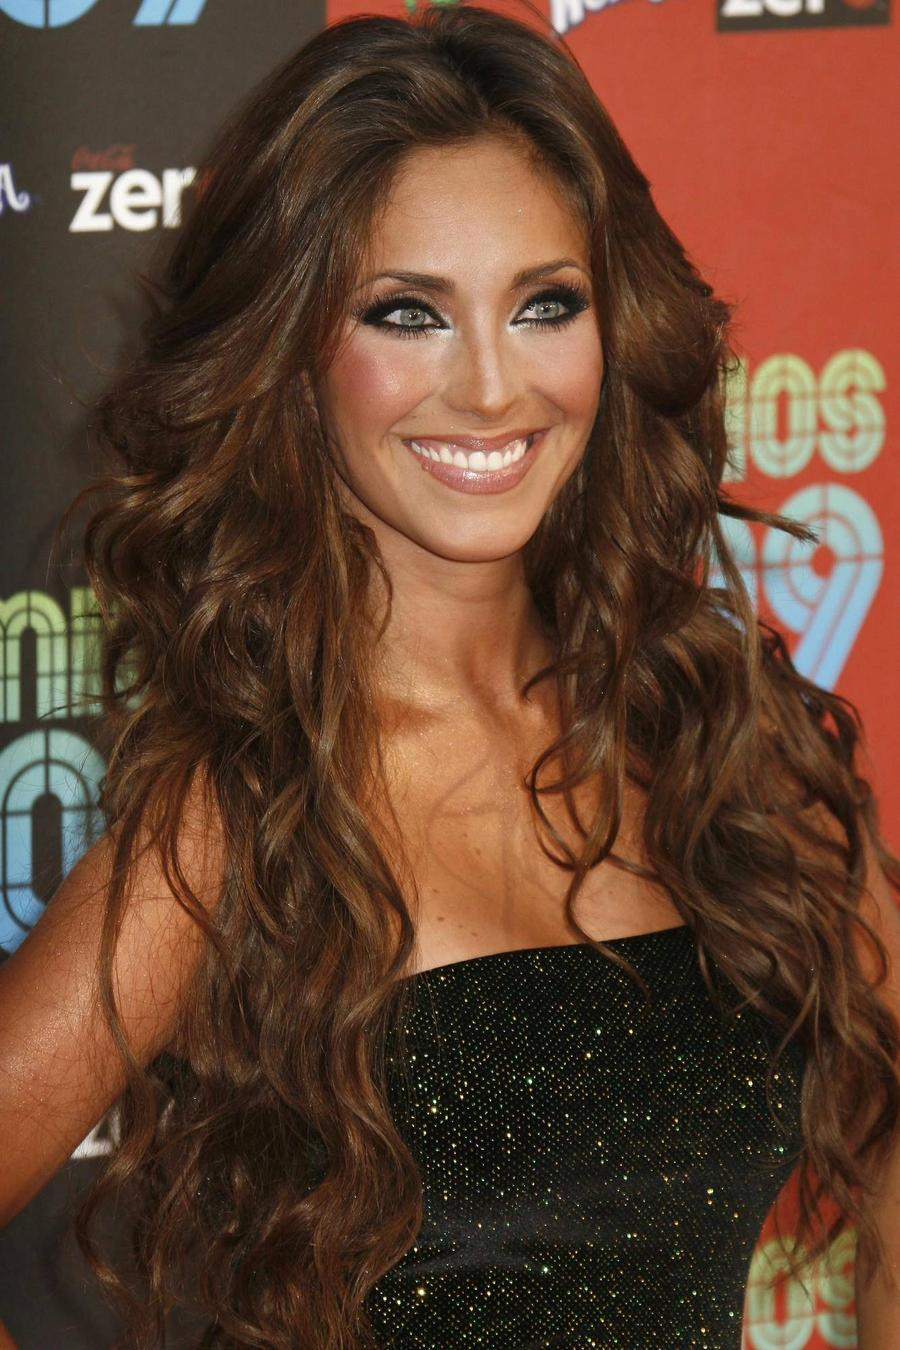 Anahi Records Song With Julion Alvarez For Pope's Mexico Trip